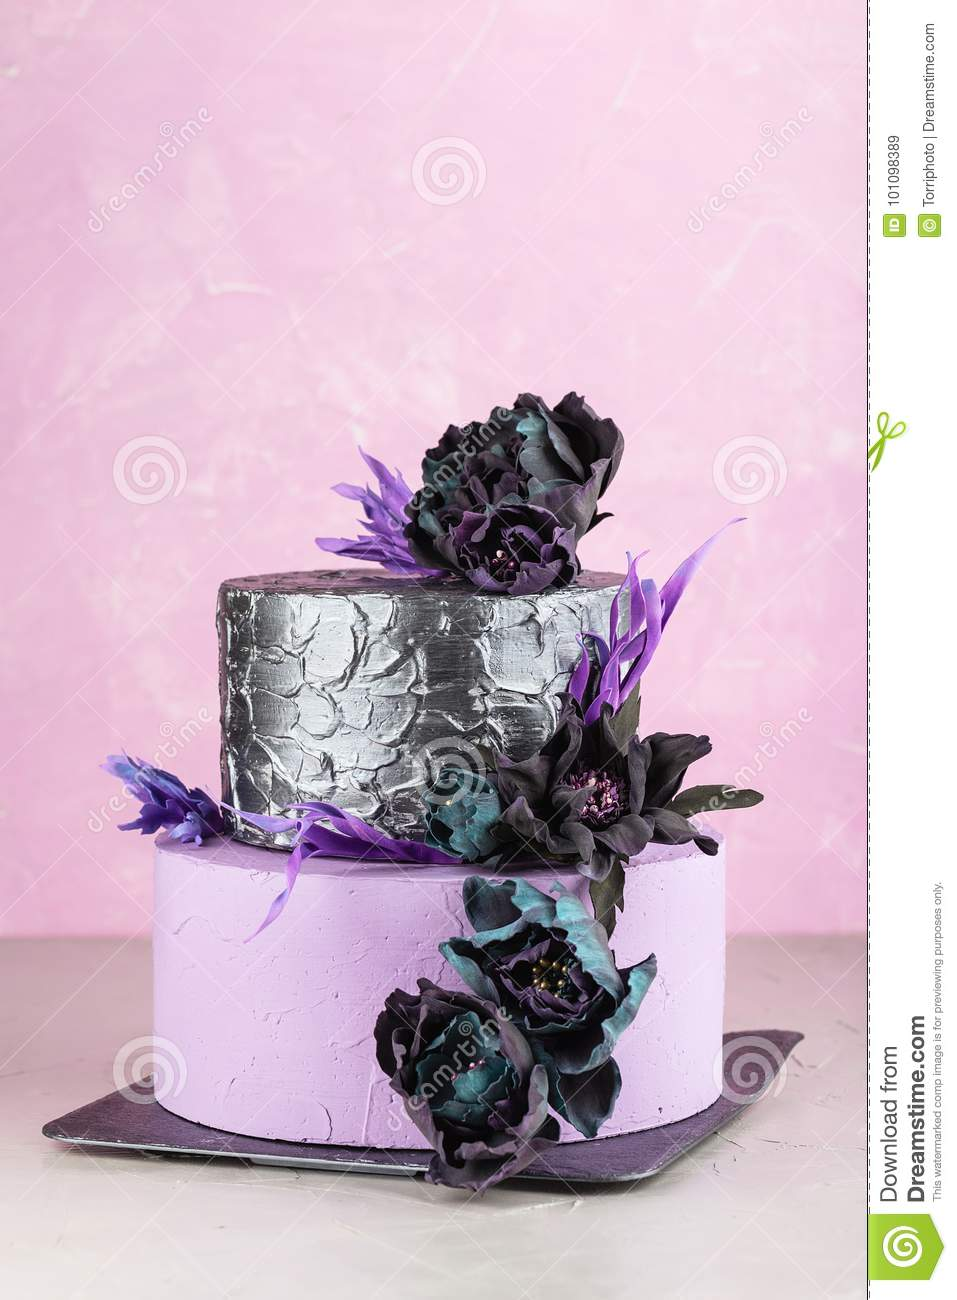 Tiered Wedding Cake With Black Fake Flowers Stock Image - Image of ...